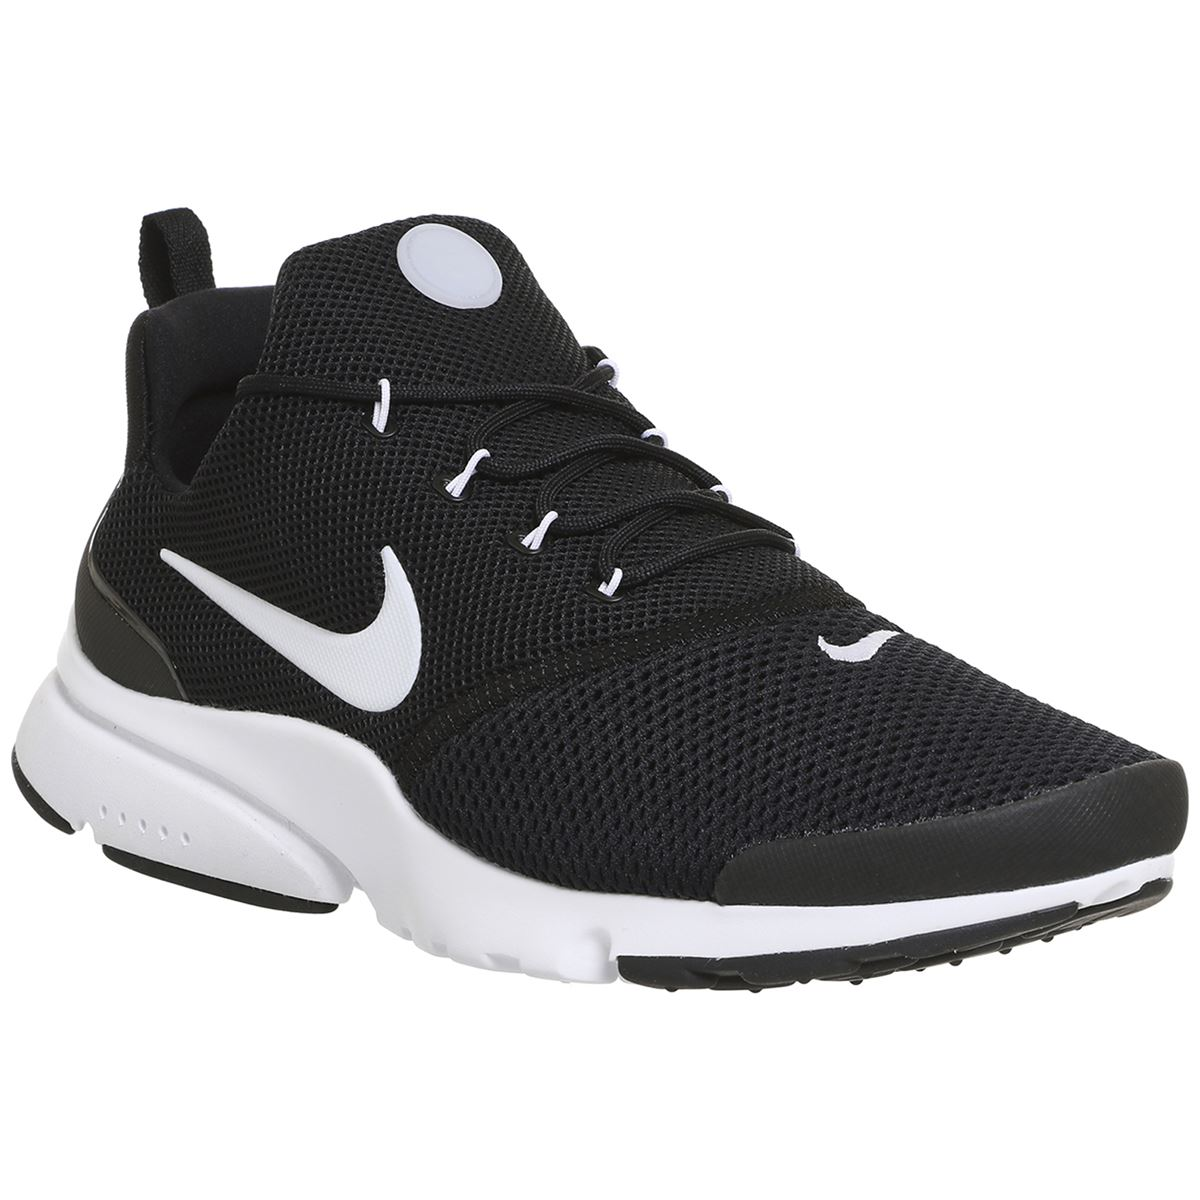 af1761b9c8fb Nike Presto Fly Mesh Lace-Up Low-Top Running Sneakers Shoes Mens ...